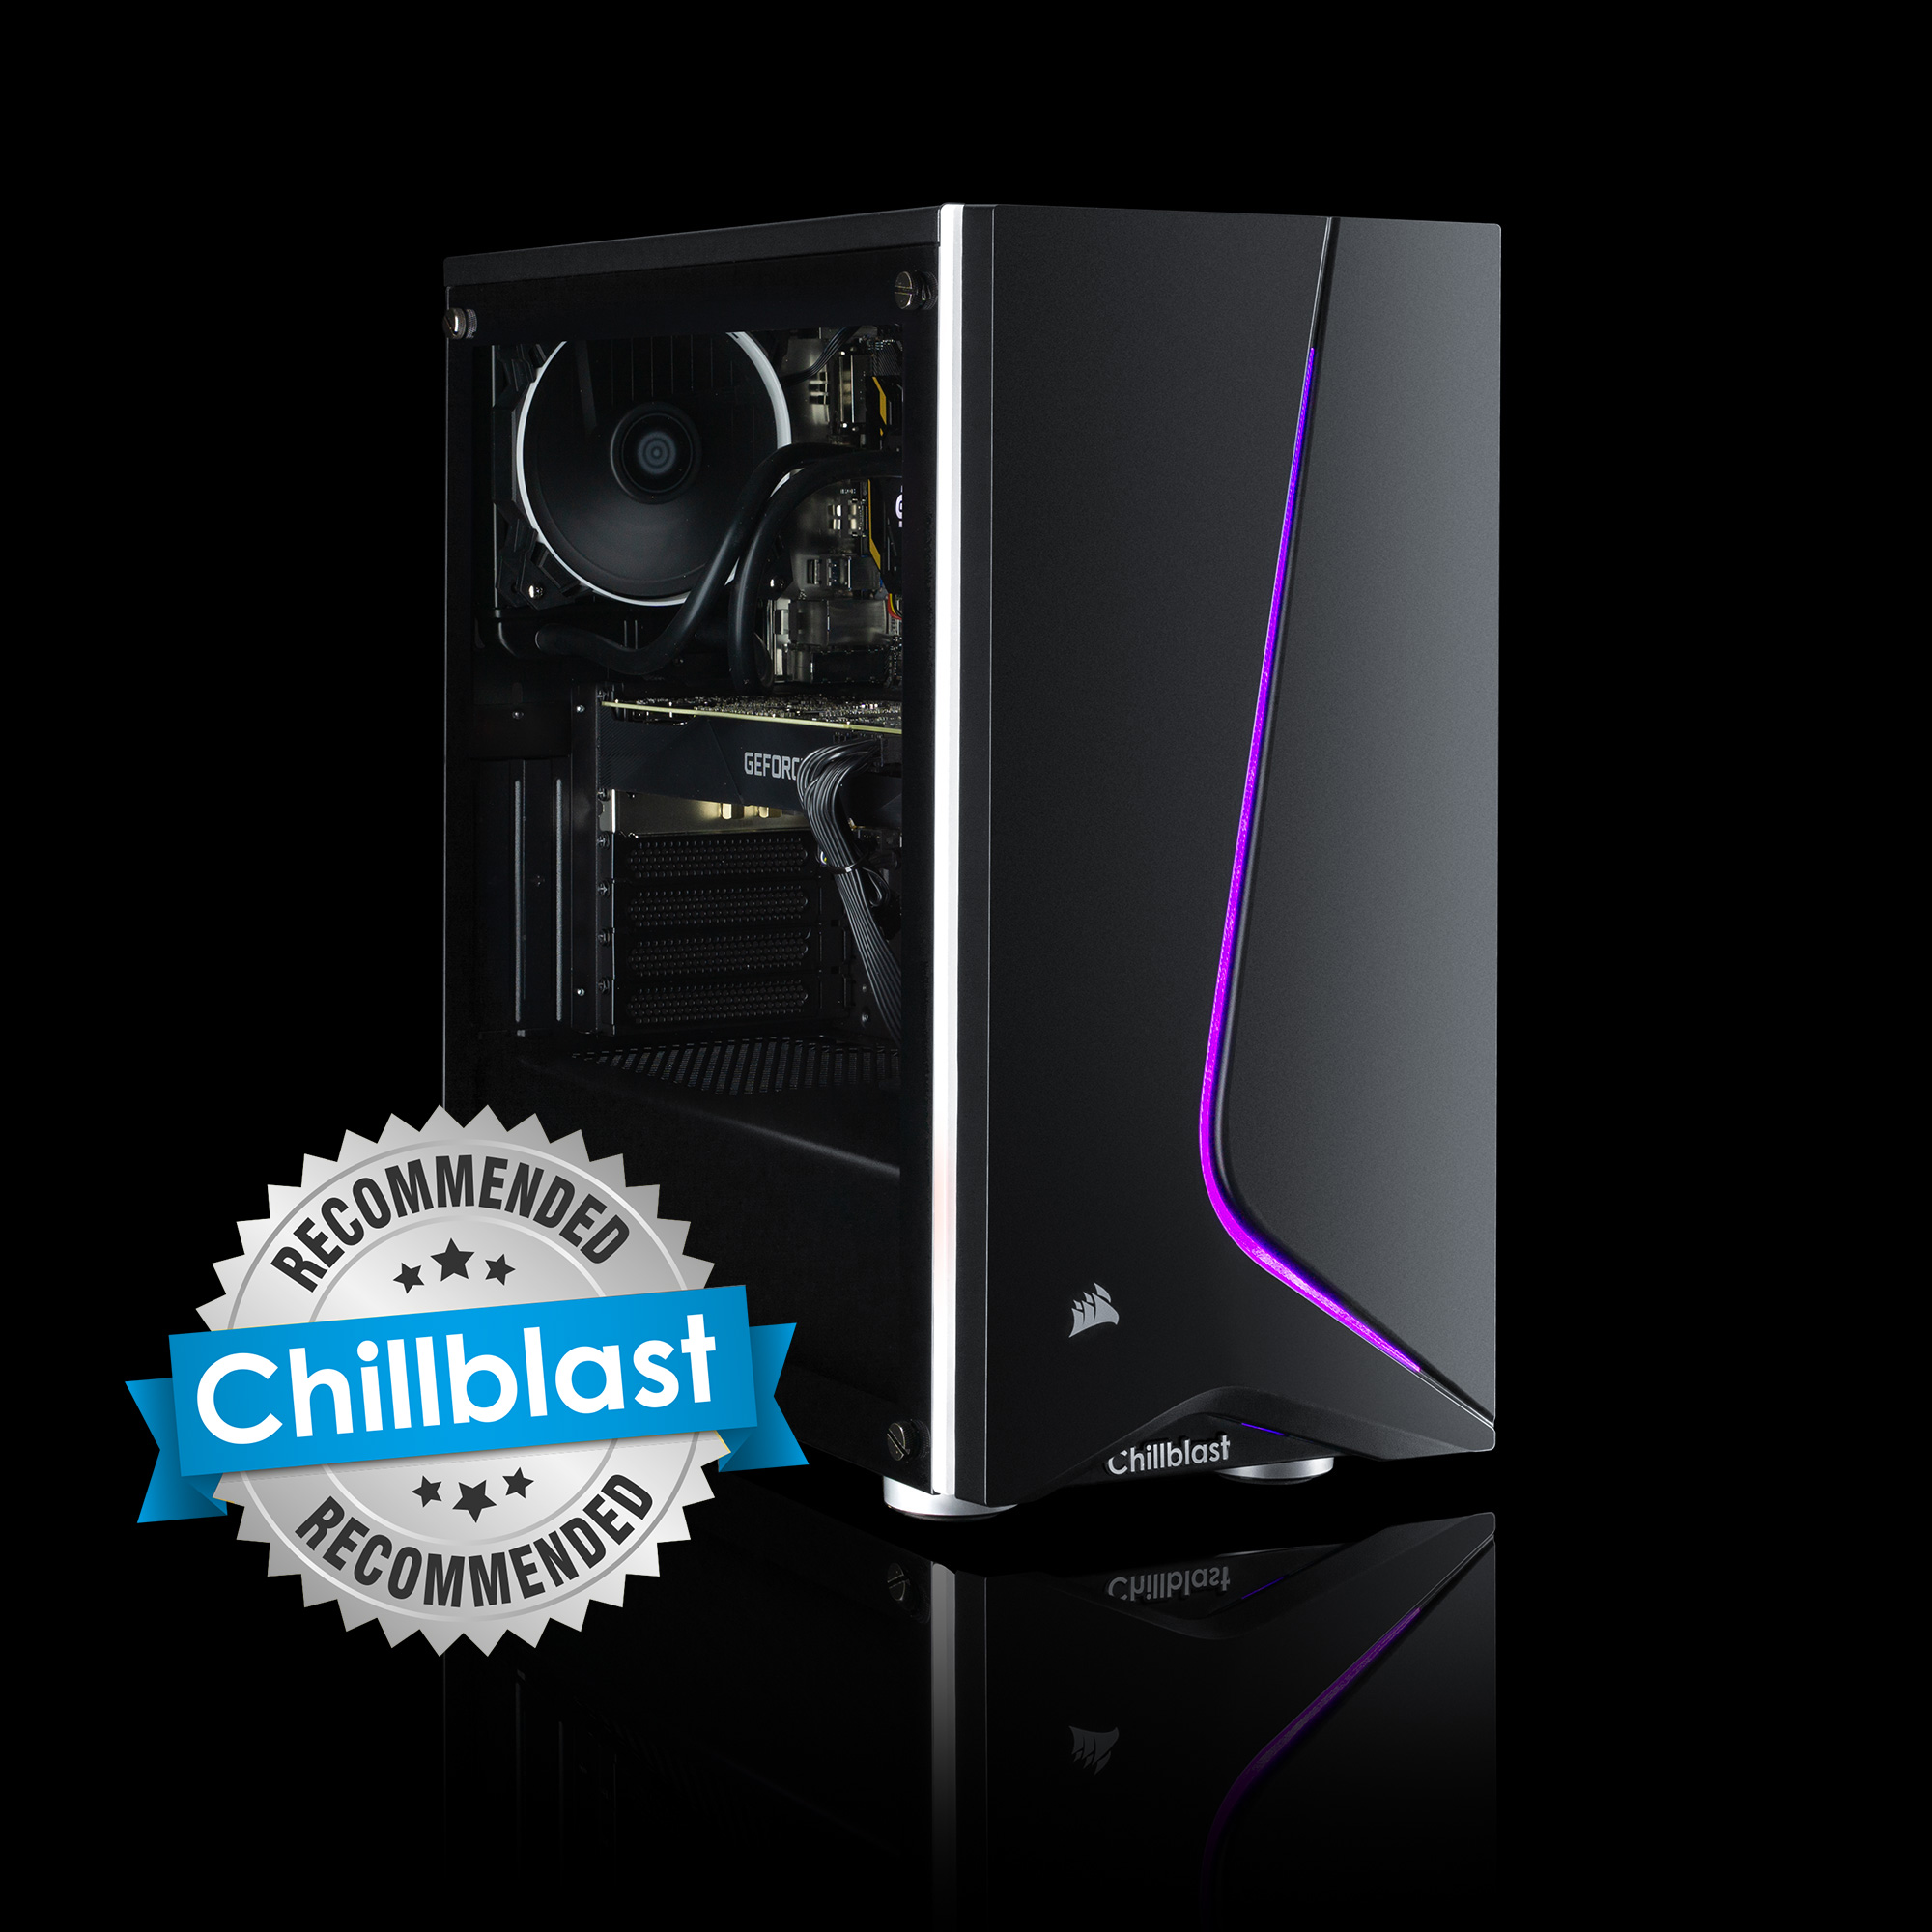 Chillblast Recommended: Fusion RTX 2070 Custom Gaming PC